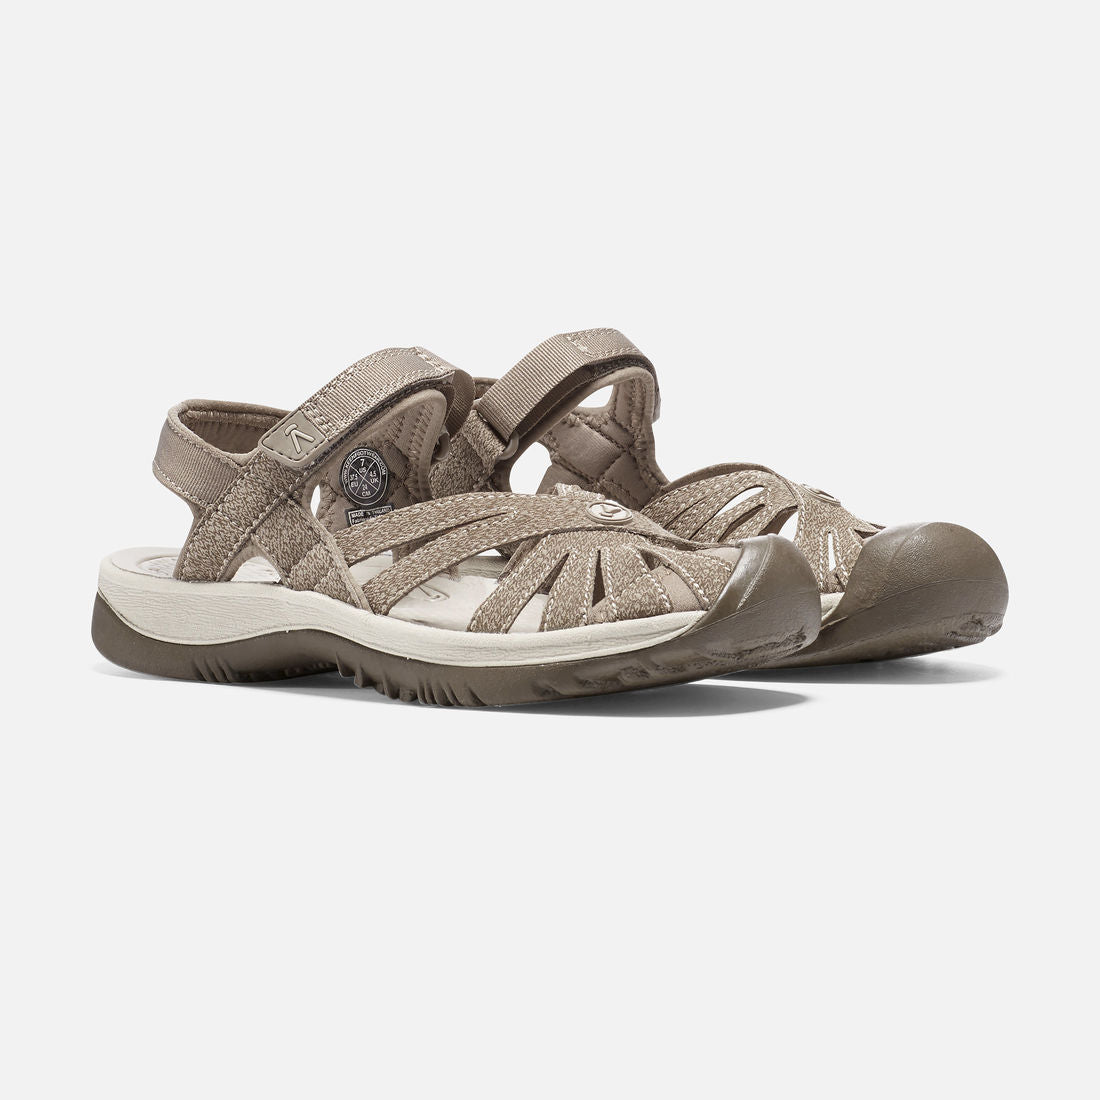 bbb08115680 Women s Keen Rose Sandal - Brindle – Gazelle Sports